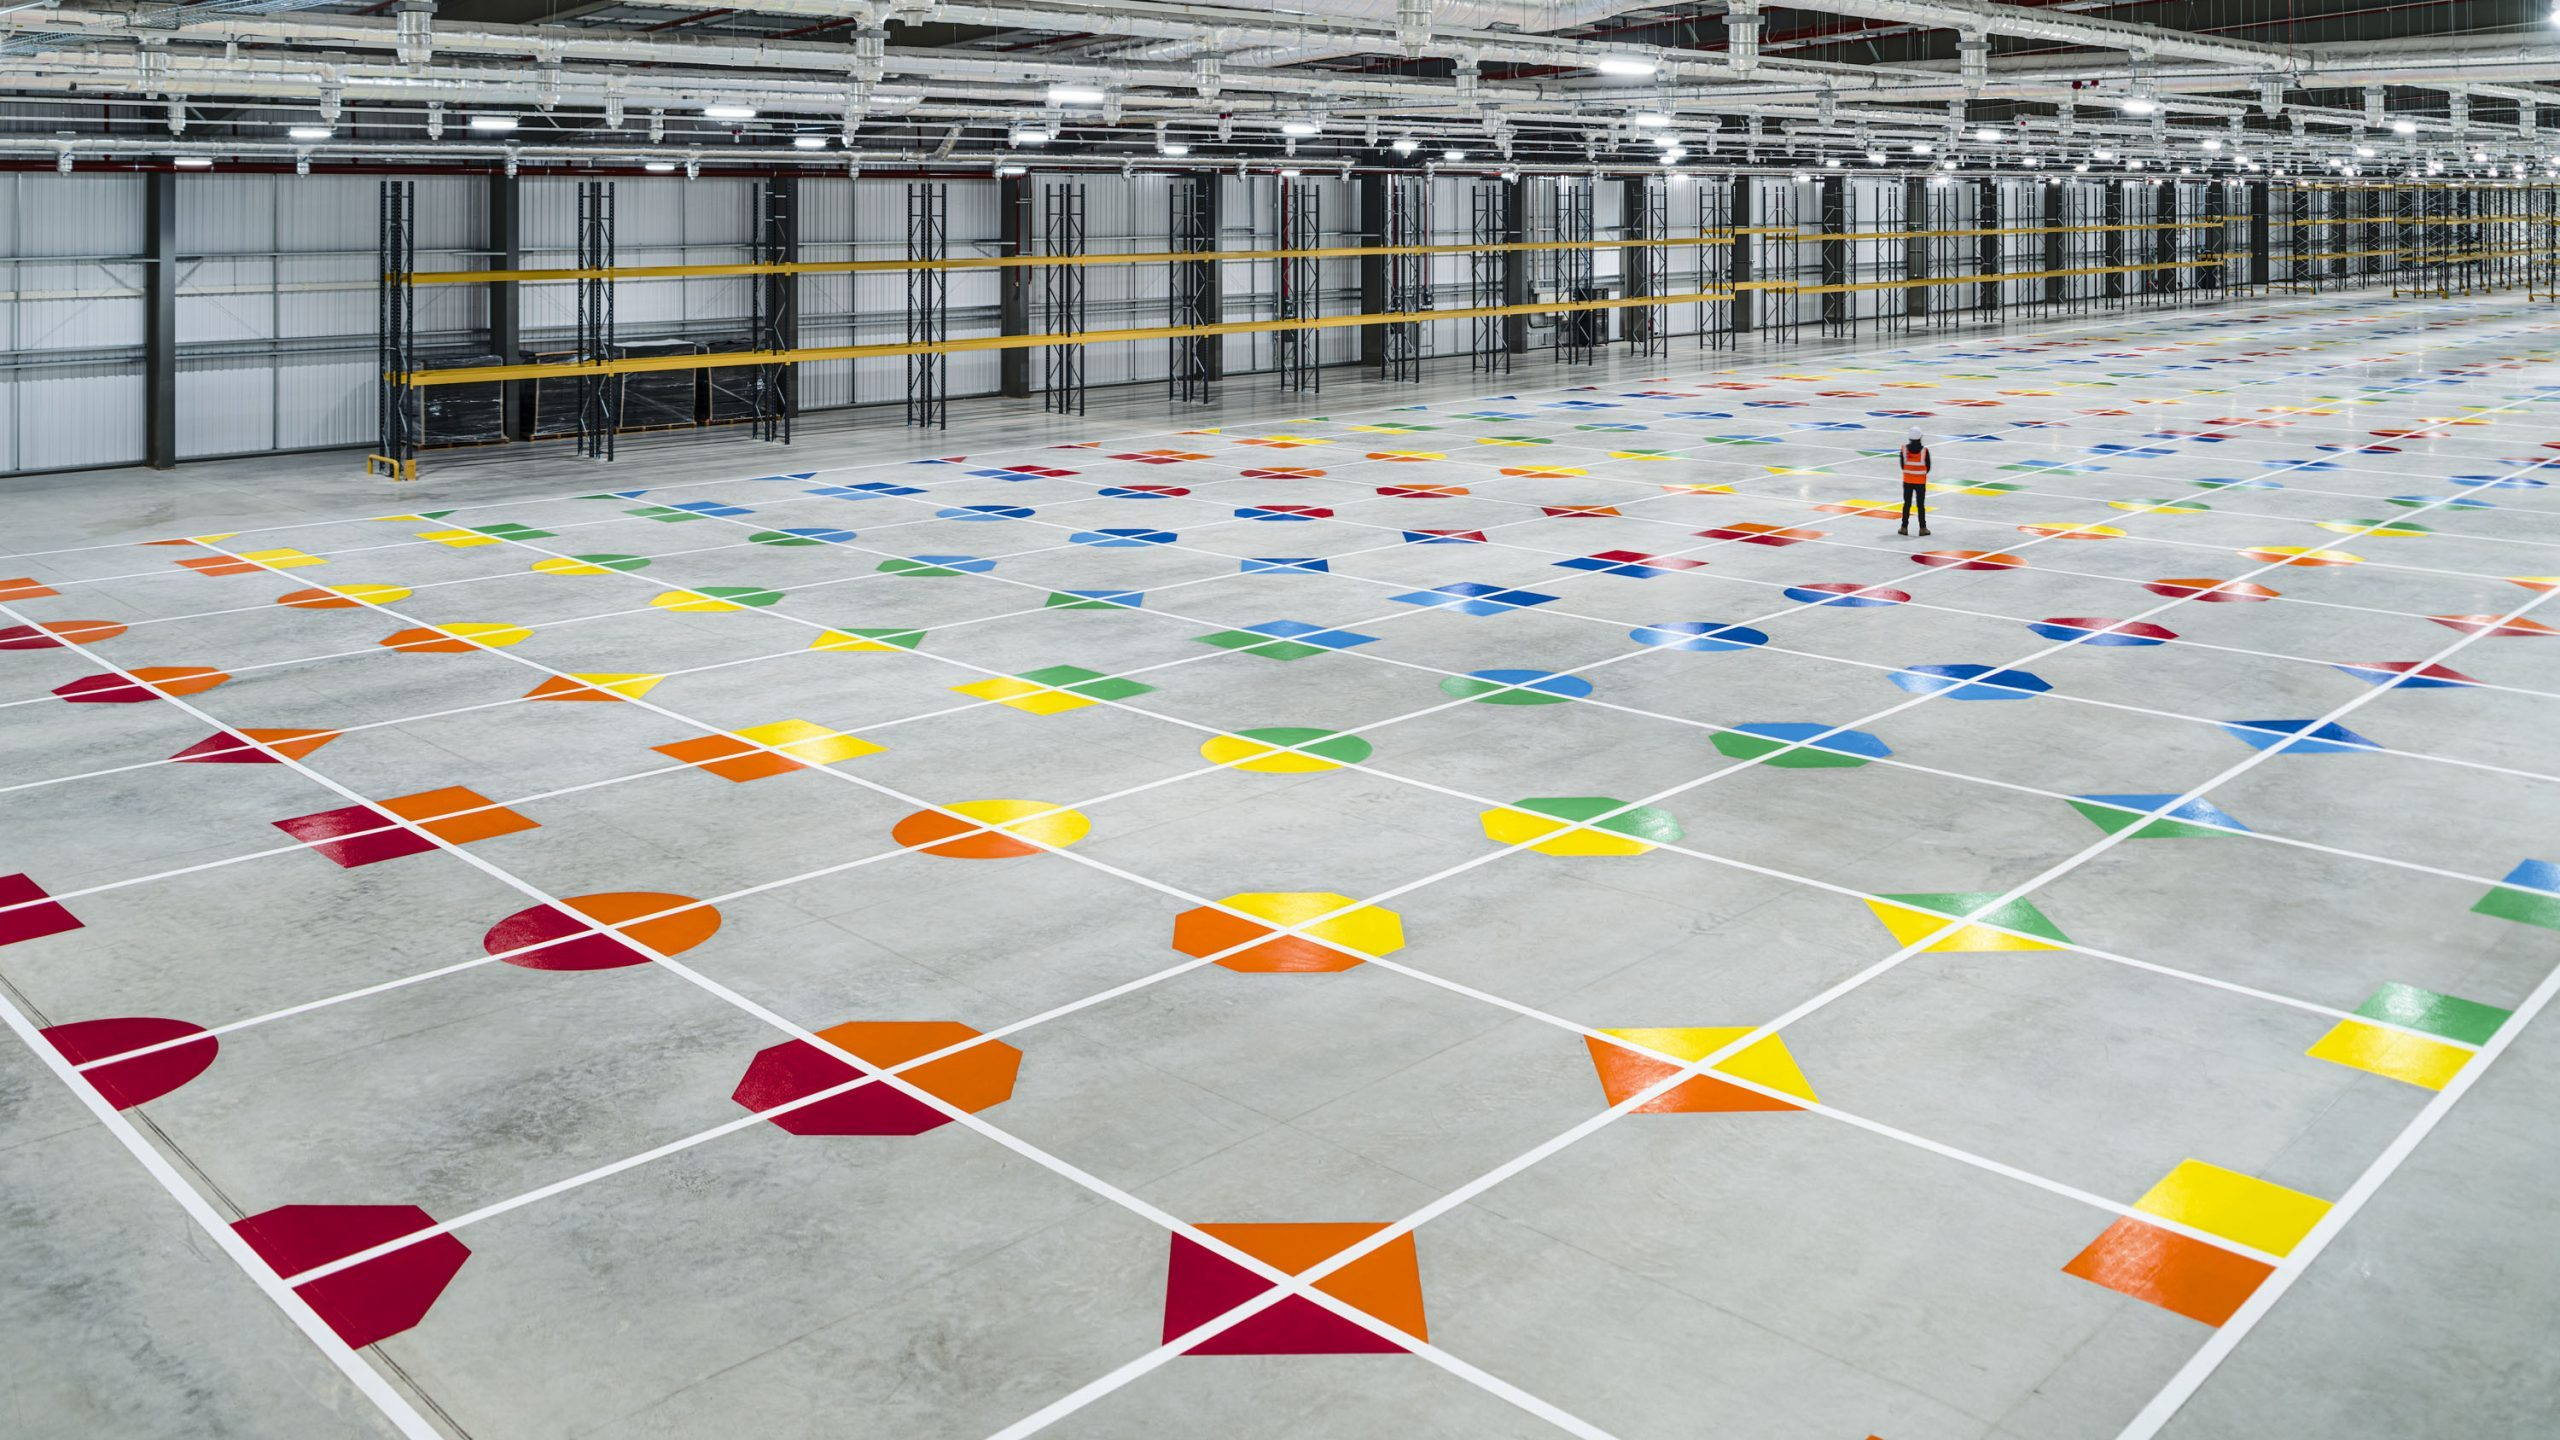 A view across the large object grid shows the huge scale of the building